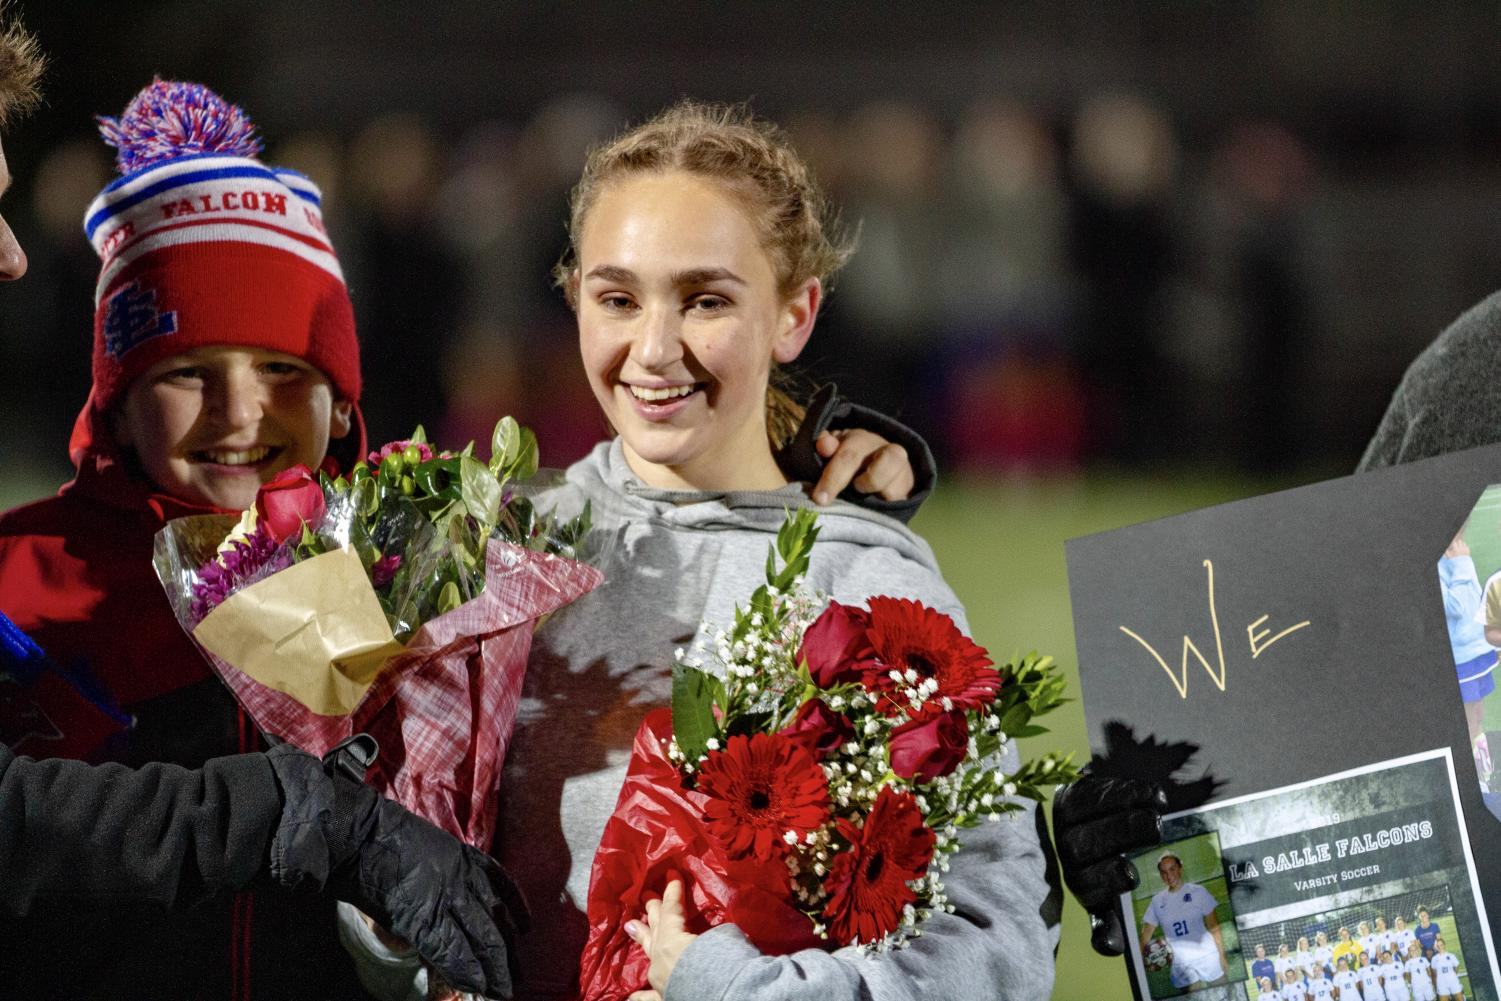 Nebels+receives+flowers+from+her+family+and+teammates.